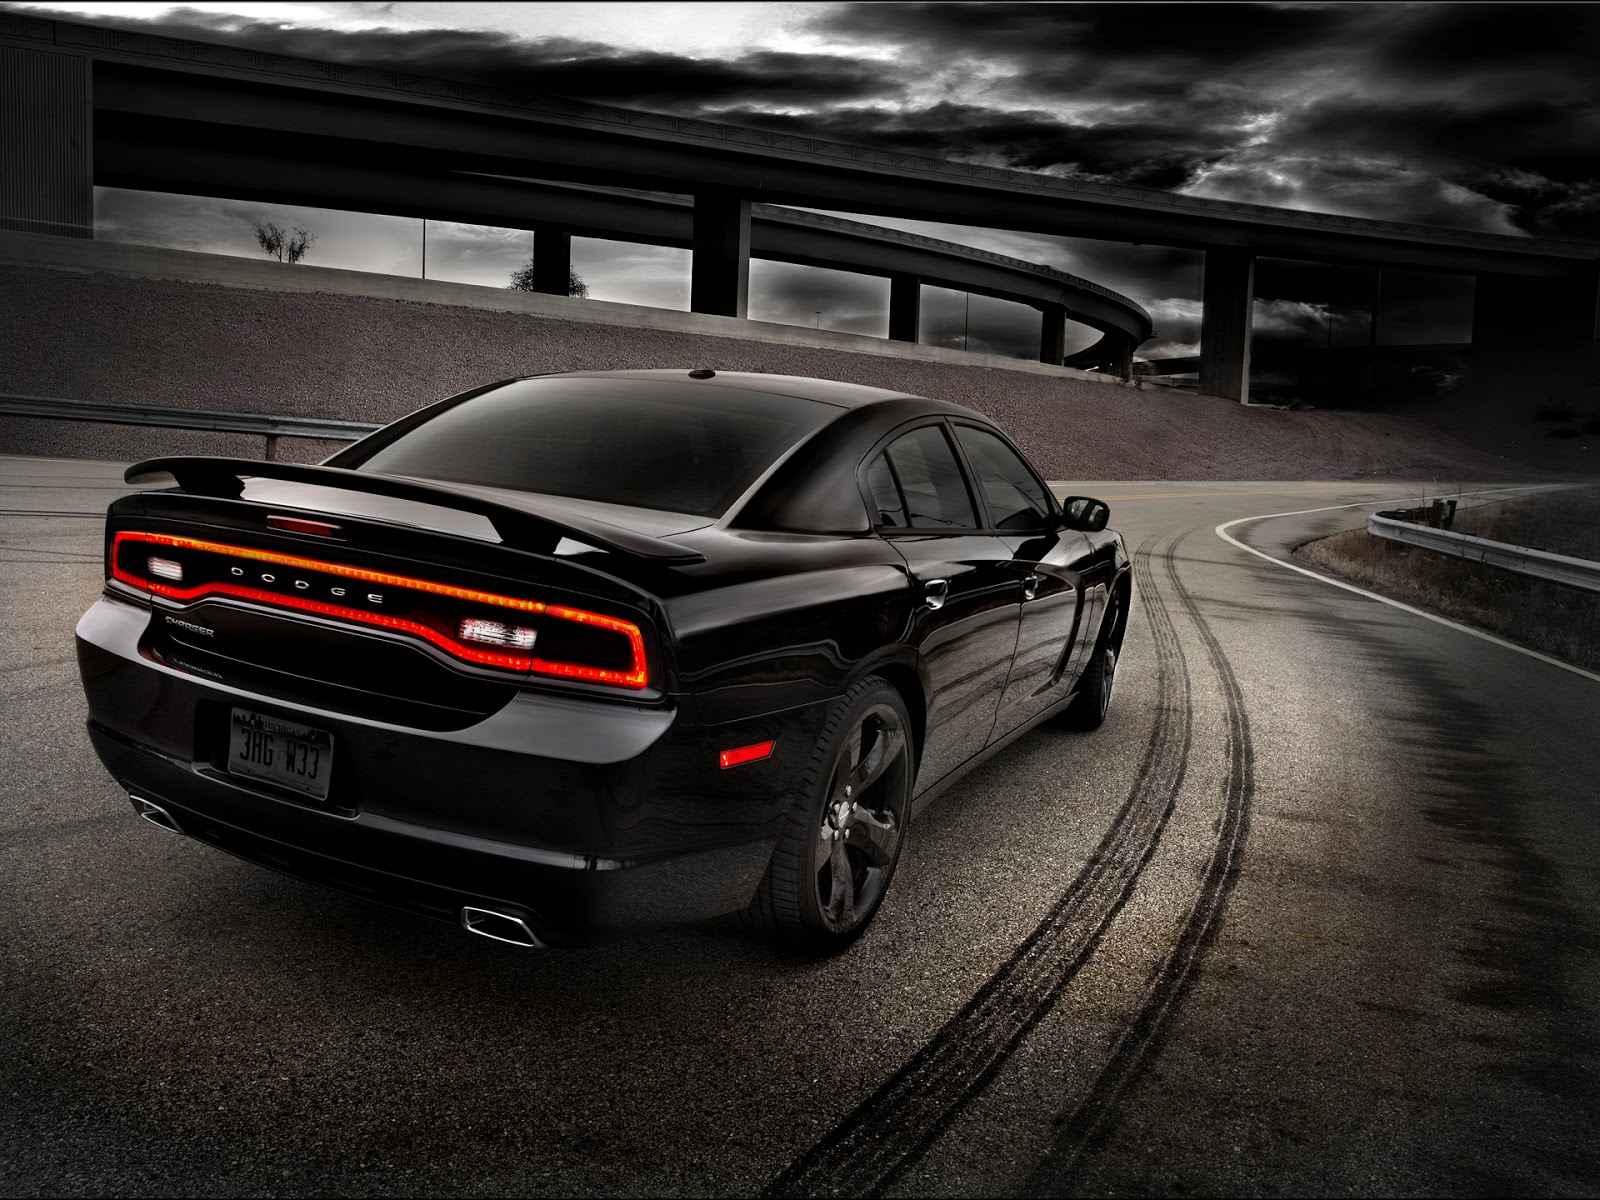 hd wallpapers 2012 dodge charger rt wallpapers. Black Bedroom Furniture Sets. Home Design Ideas